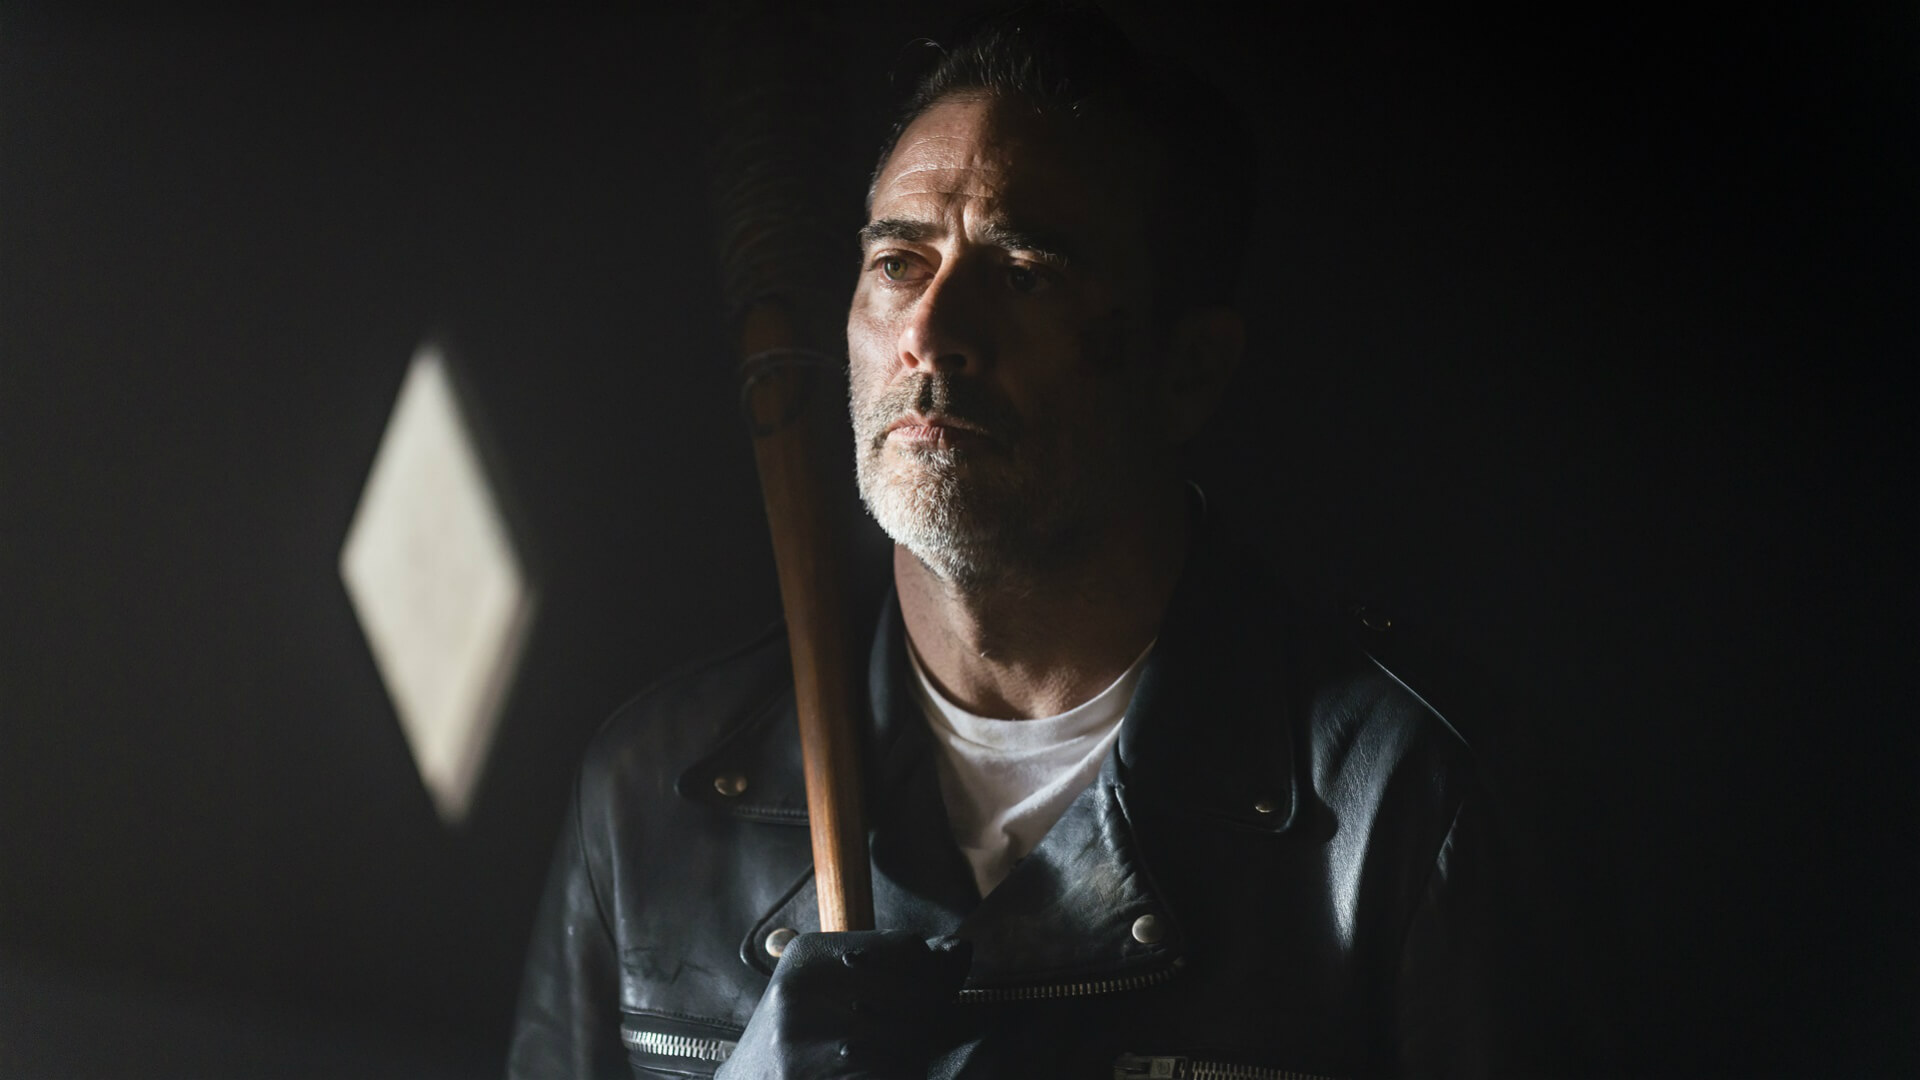 Tekken 7 to Add Negan from The Walking Dead as a Playable Character